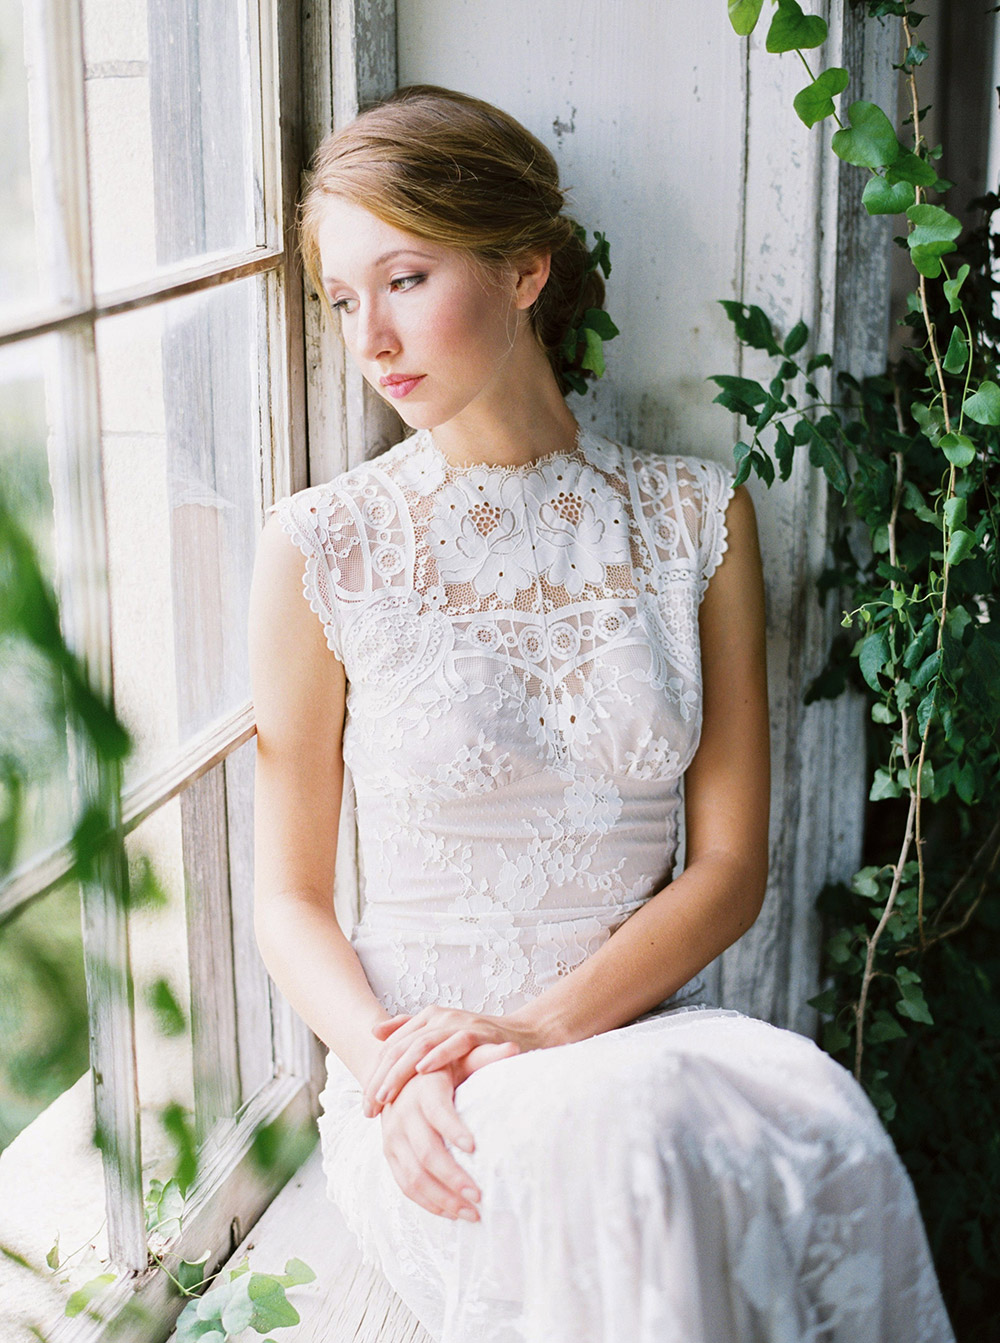 Cheyenne - Romantique 2016 Collection. www.theweddingnotebook.com